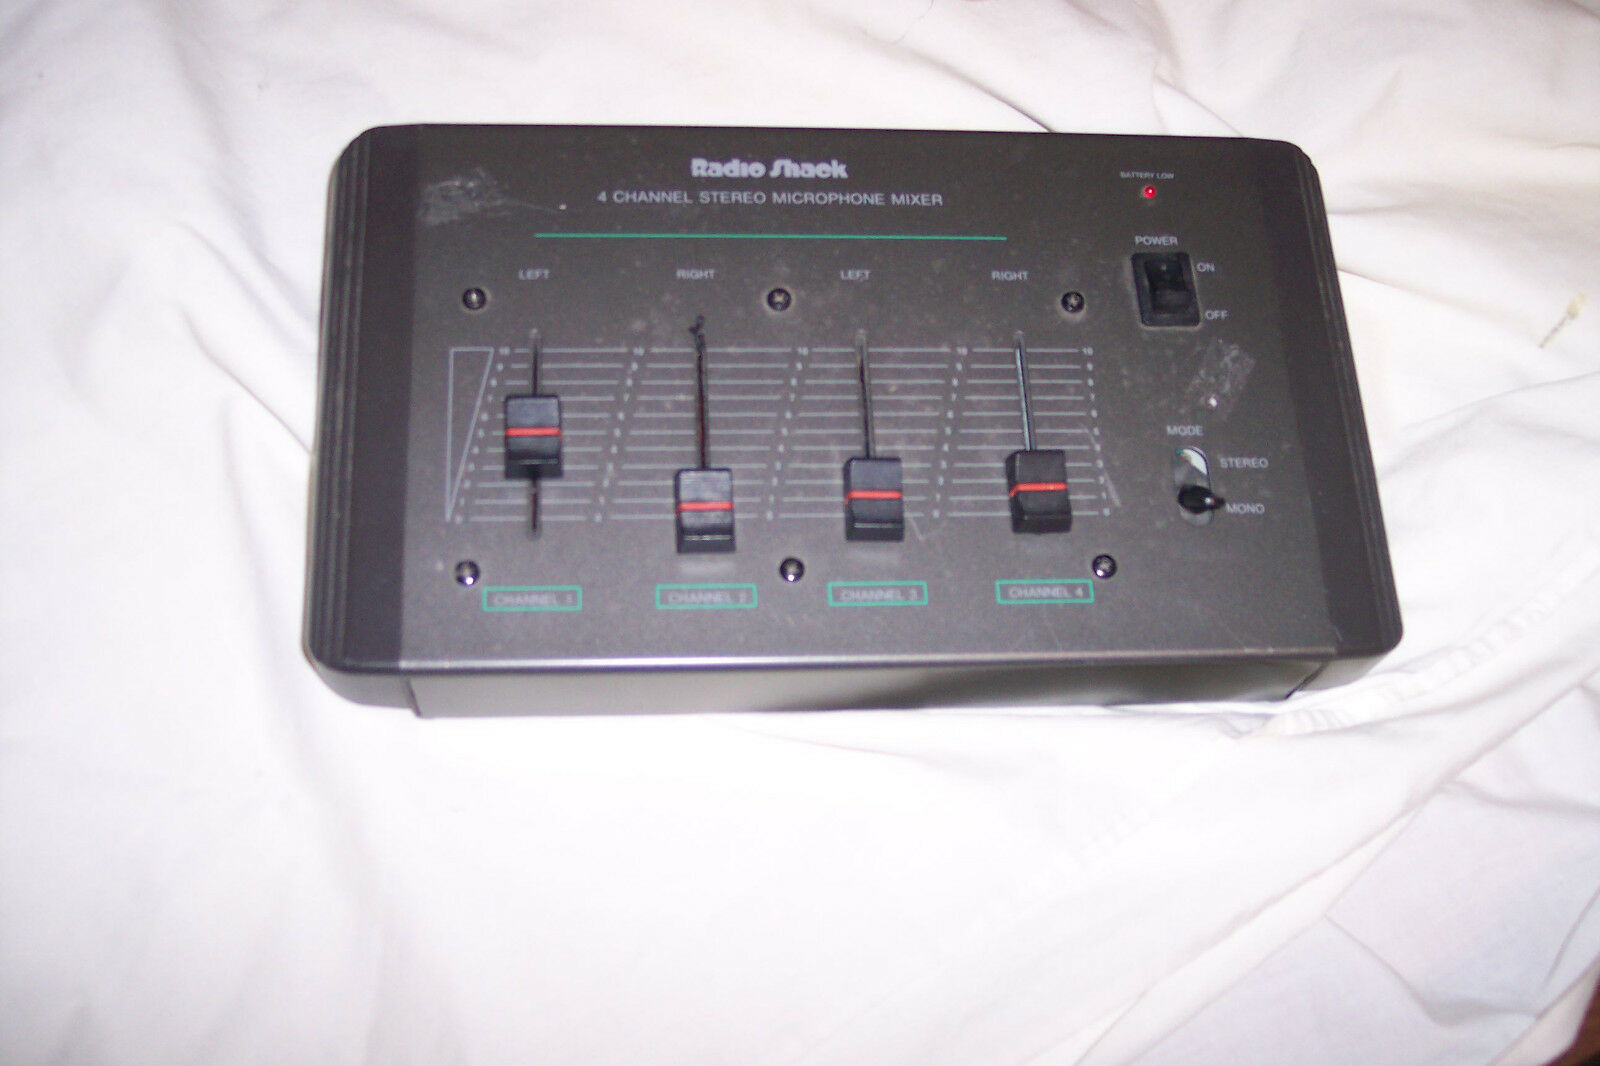 Radio shack 4 ch stereo miccrophone mixer.. Available Now for 9.99